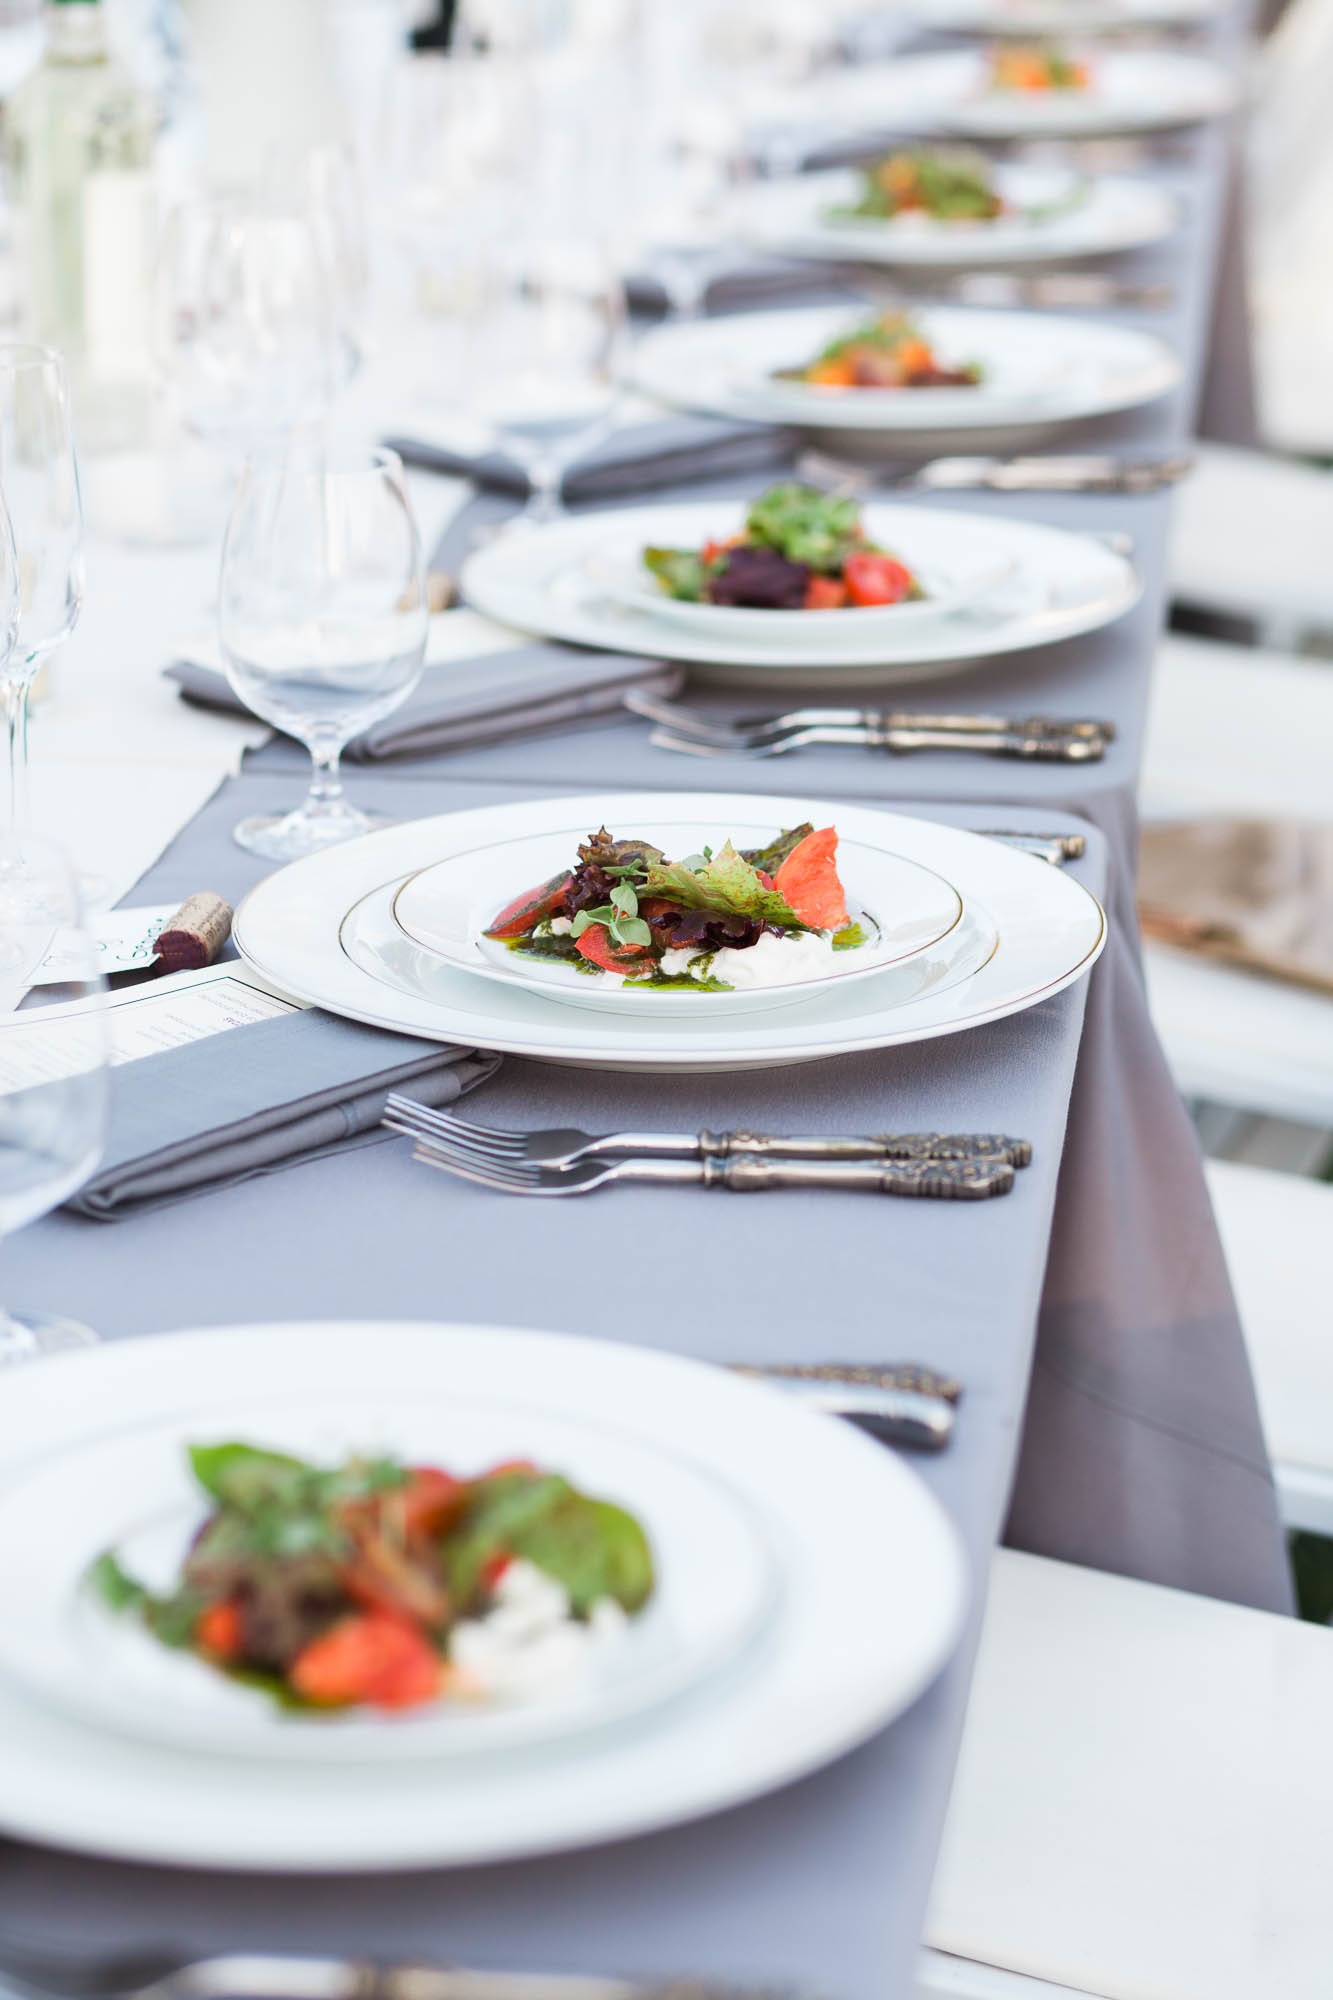 WINERY CHEFS WEDDING CATERING MARIA VILLANO PHOTOGRAPHY